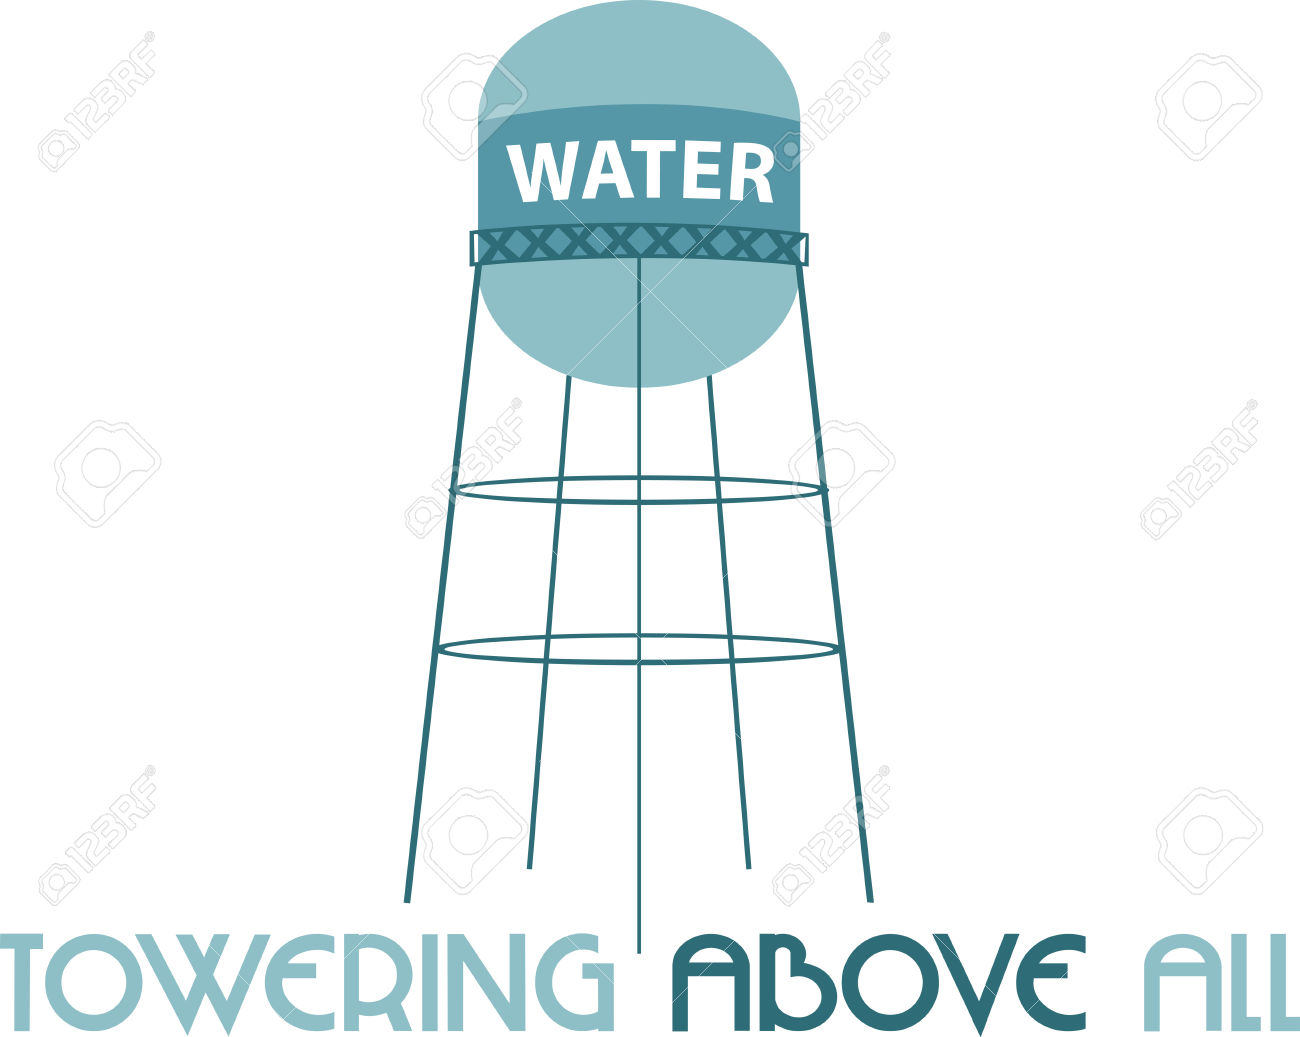 A Water Tower Or Elevated Water Tower Is A Large Elevated Water.